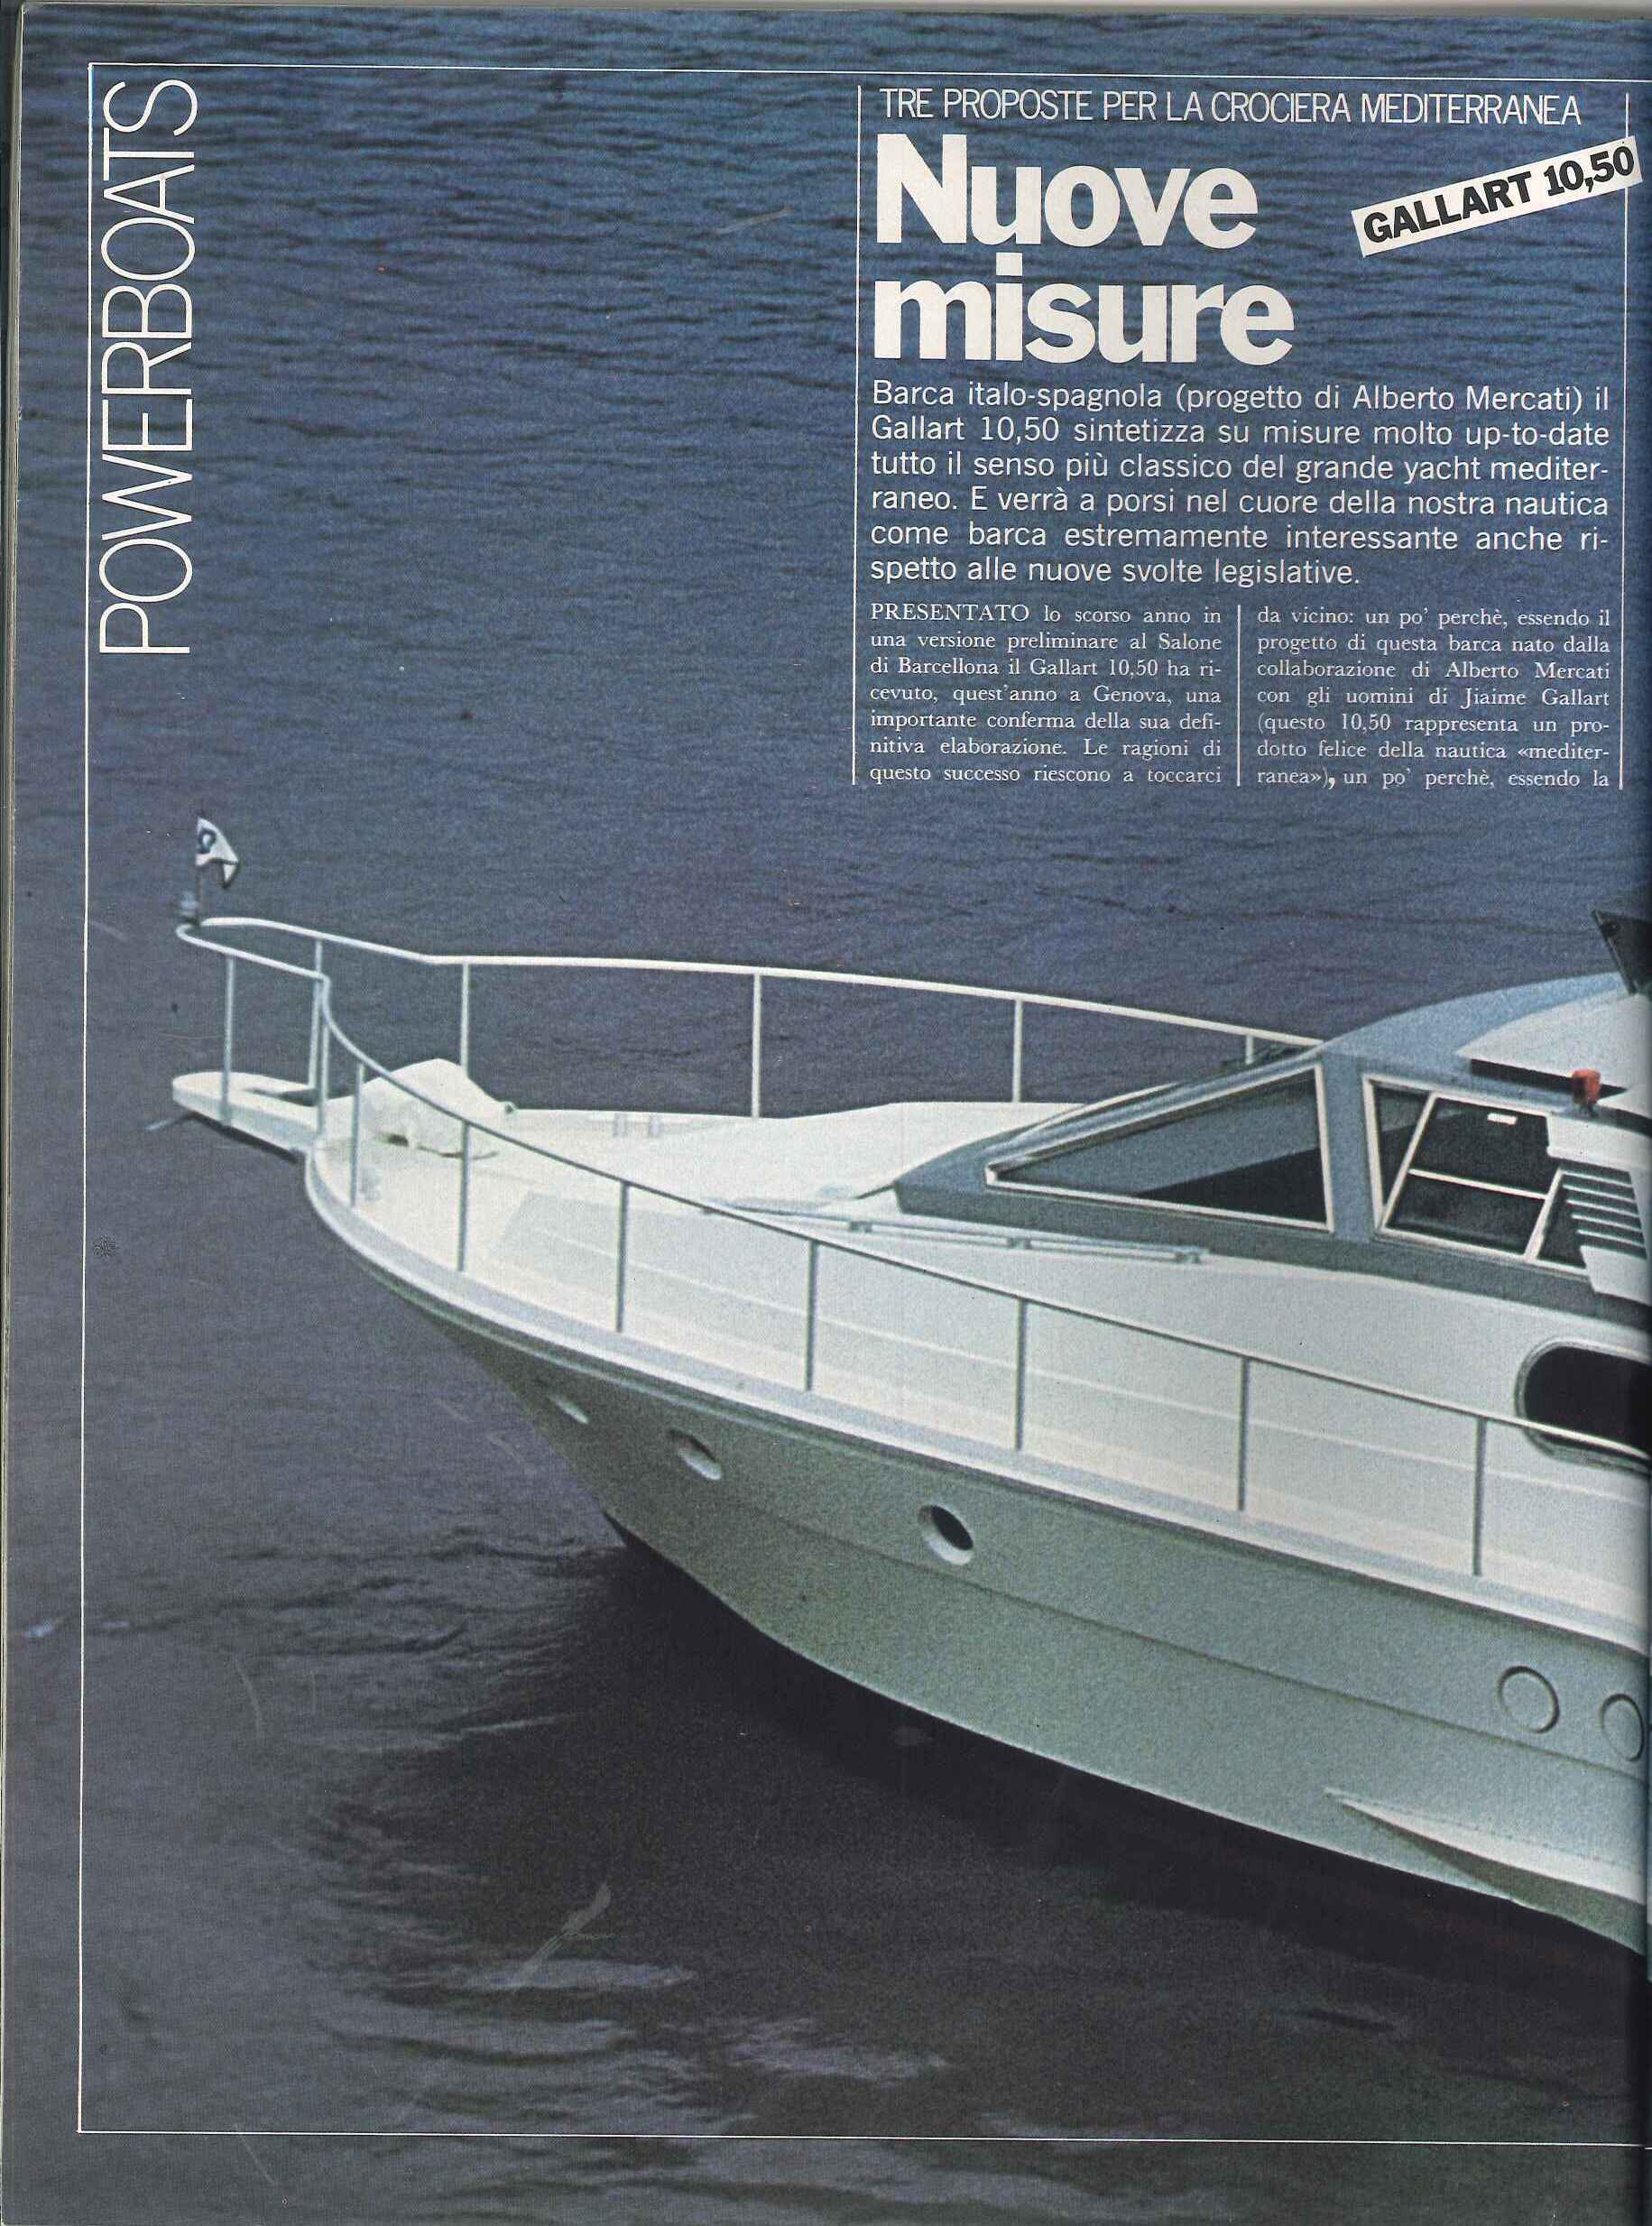 1977 02 PRESS GALLART 10.50 UOMO MARE N°19 (01).jpg